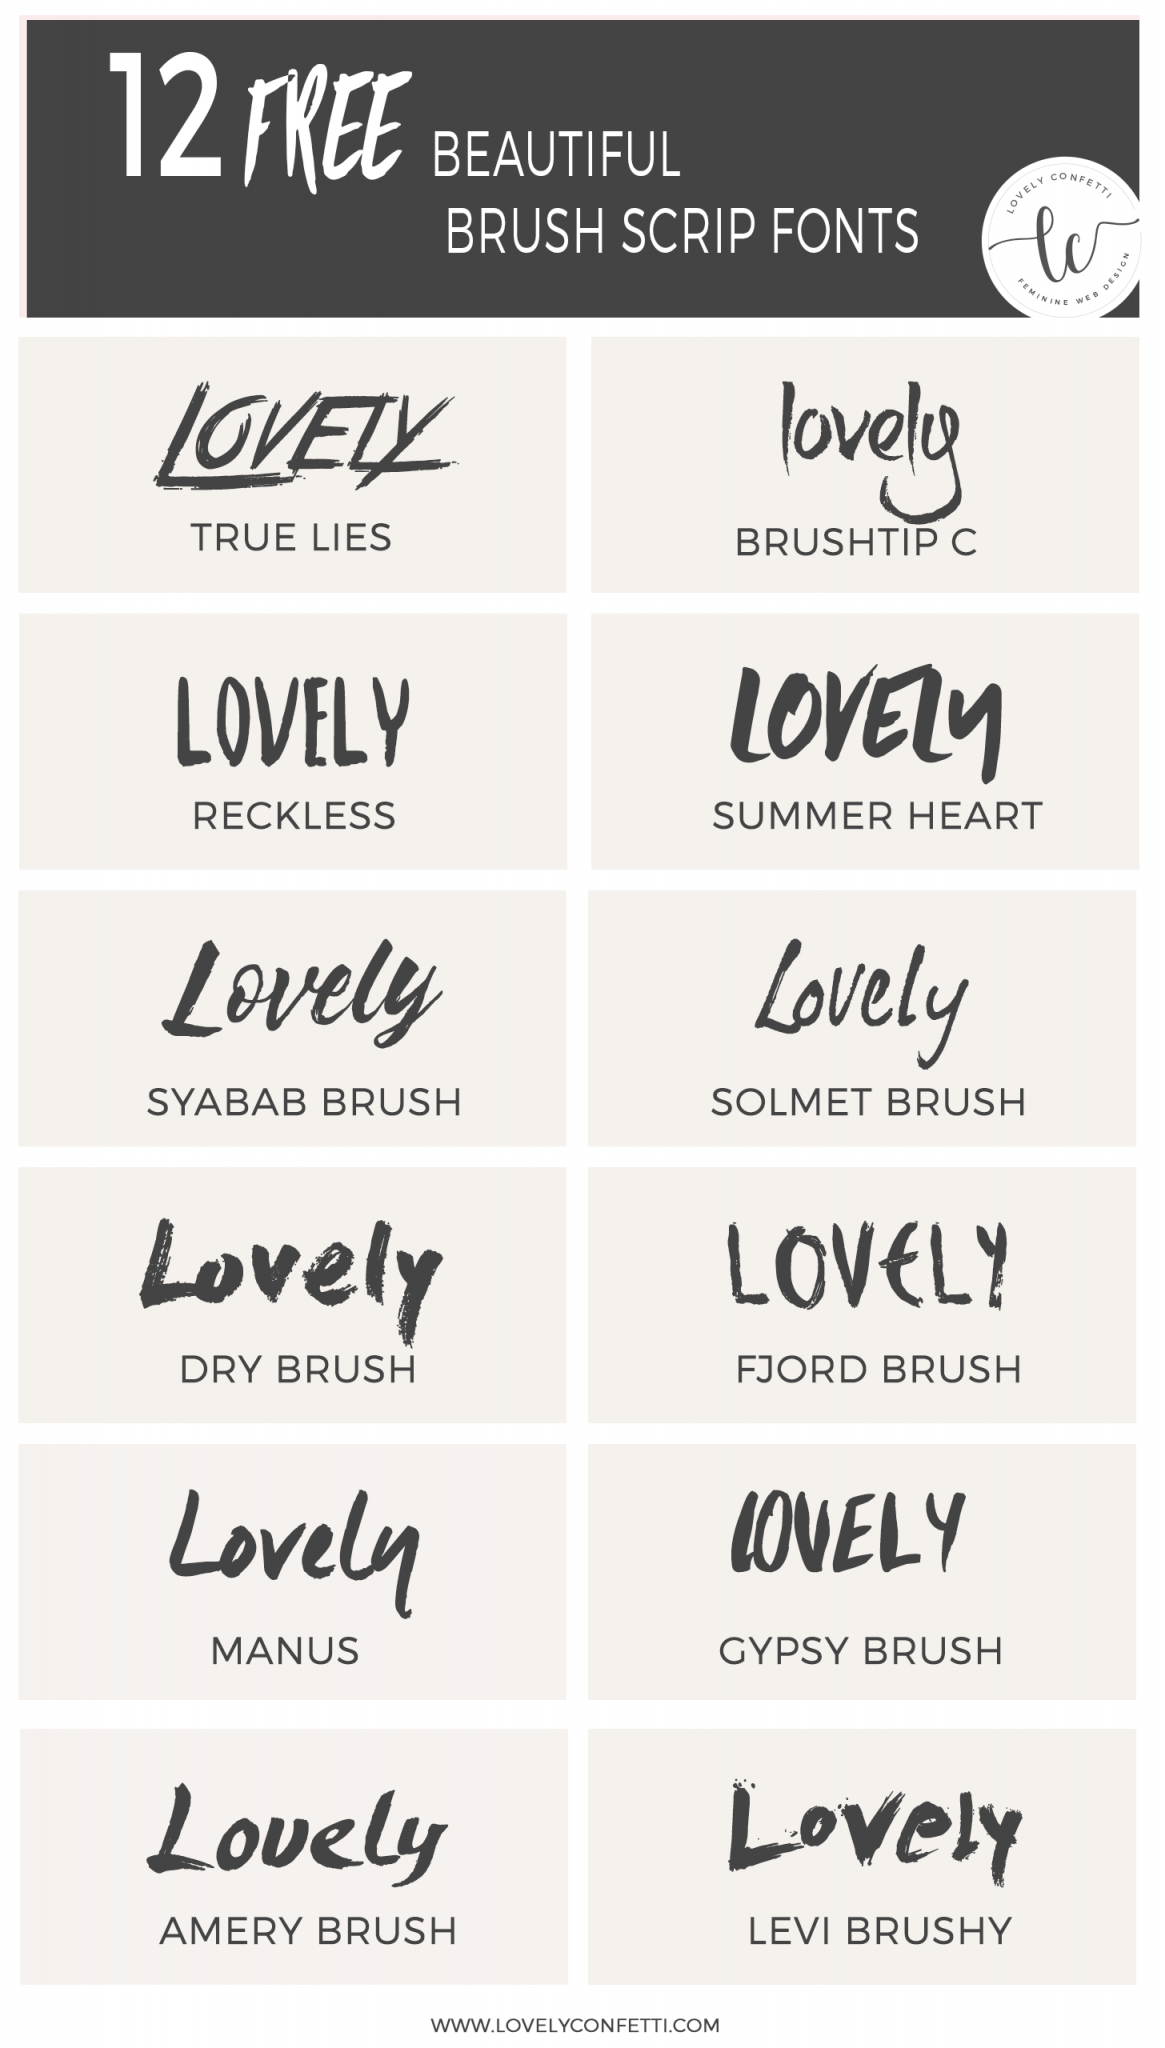 12 beautiful free brush script fonts - free resources - Lovely Confetti